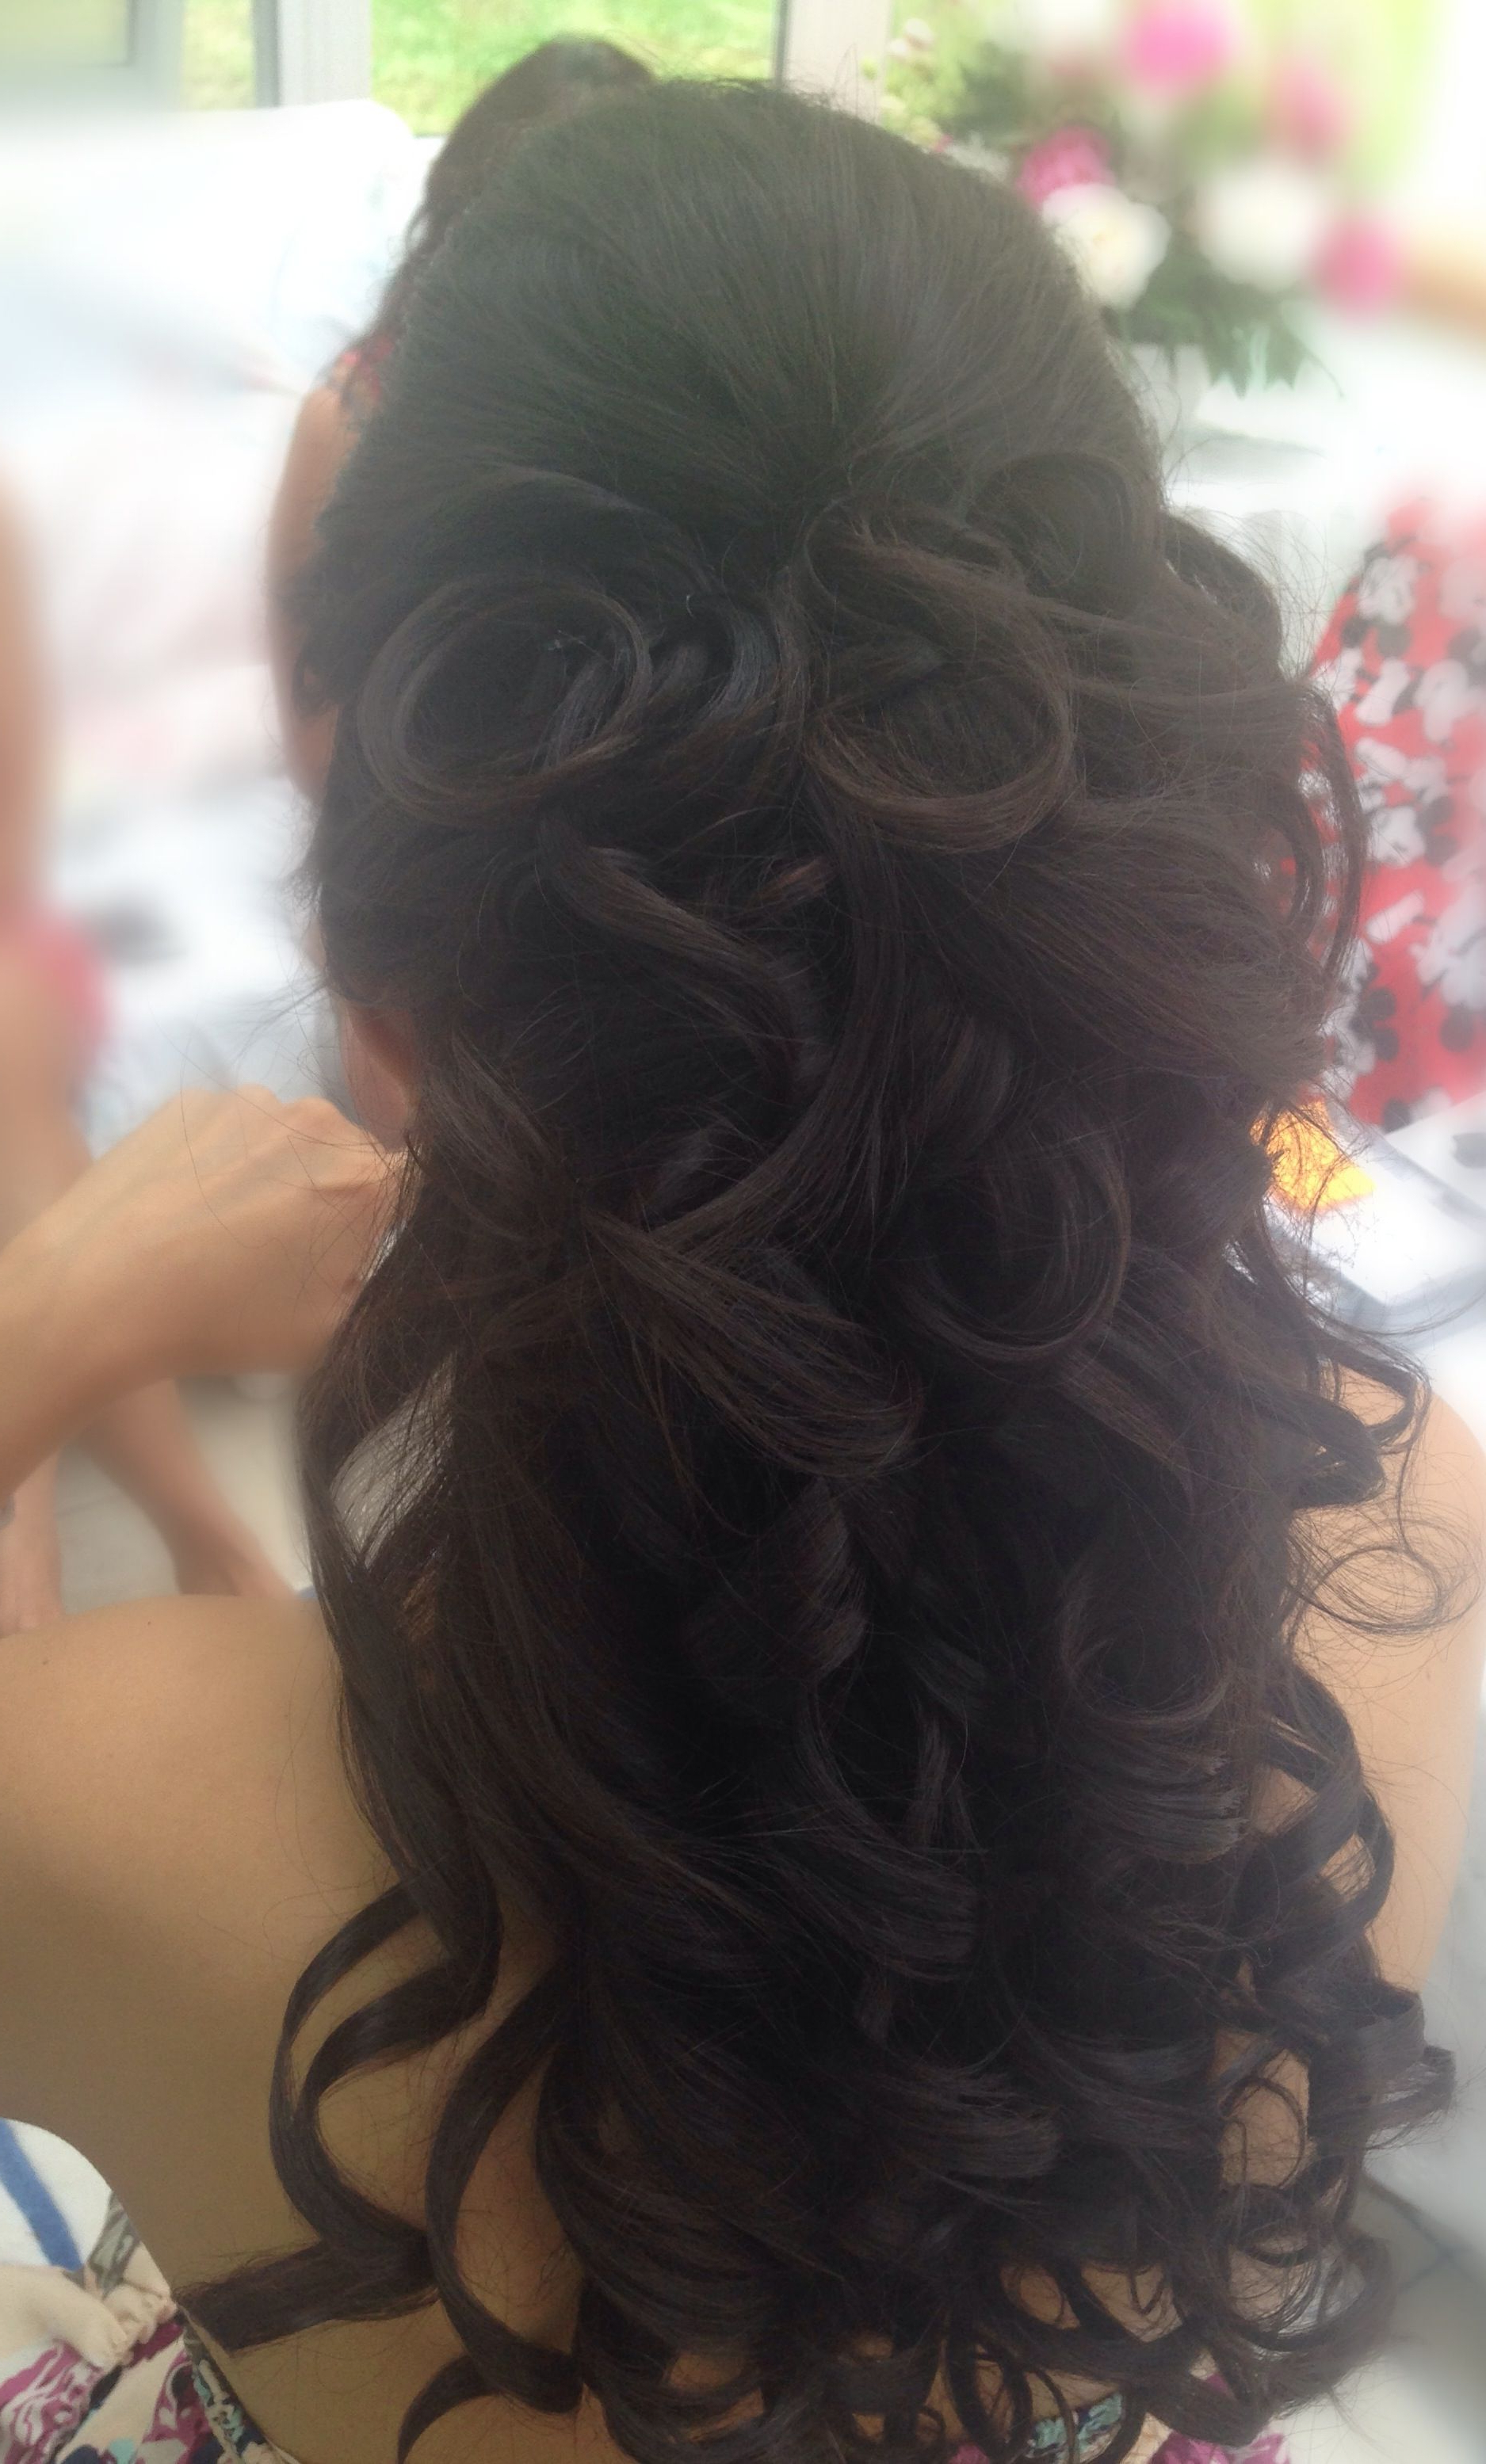 Wedding Hairstyle, Bridal Hairstyle, Special Occasions, Up Dos And In Recent Medium Hairstyles For Special Occasions (View 19 of 20)